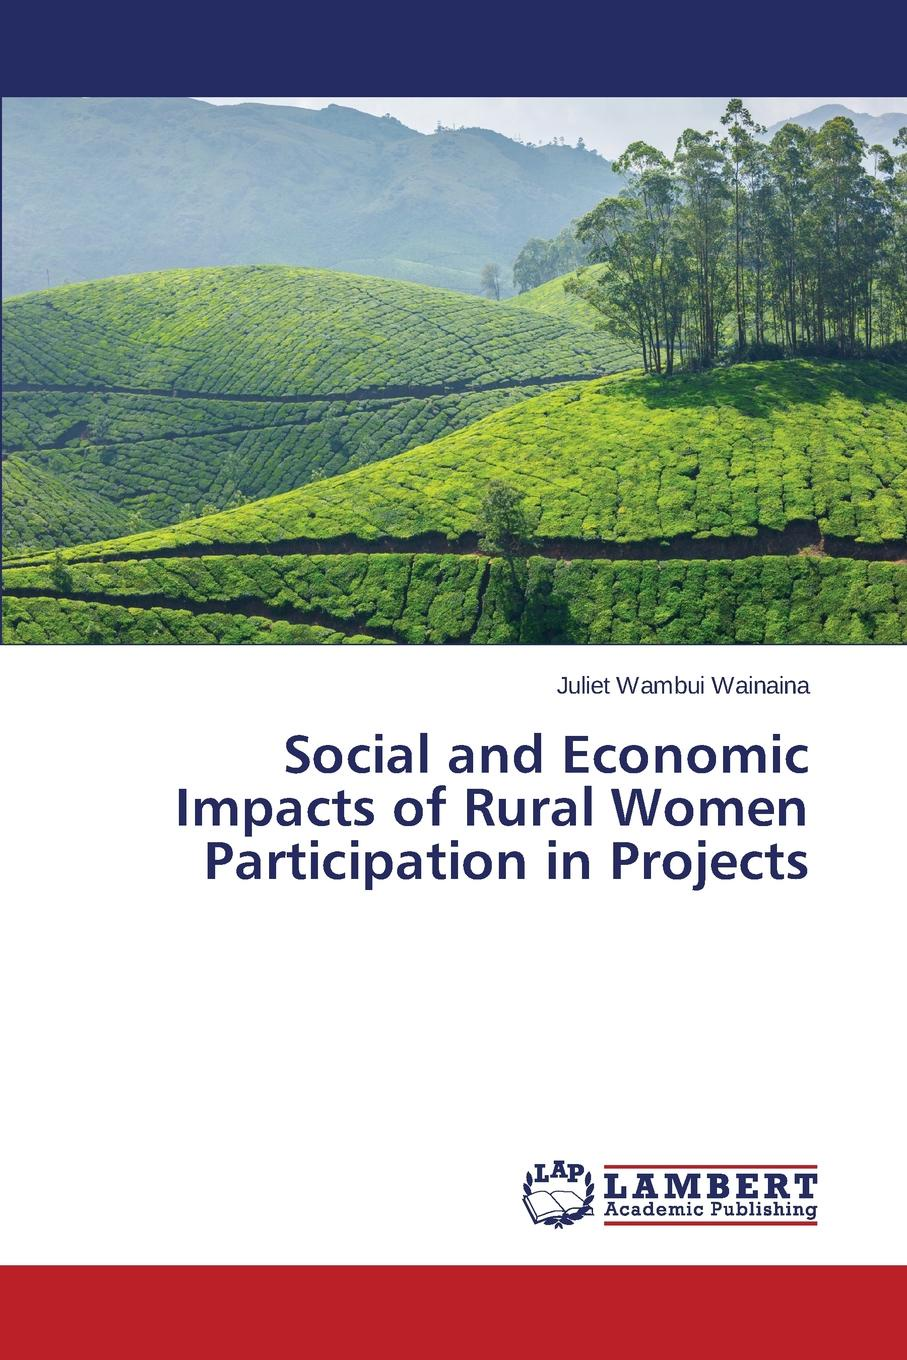 Wambui Wainaina Juliet Social and Economic Impacts of Rural Women Participation in Projects development banks in rural social change